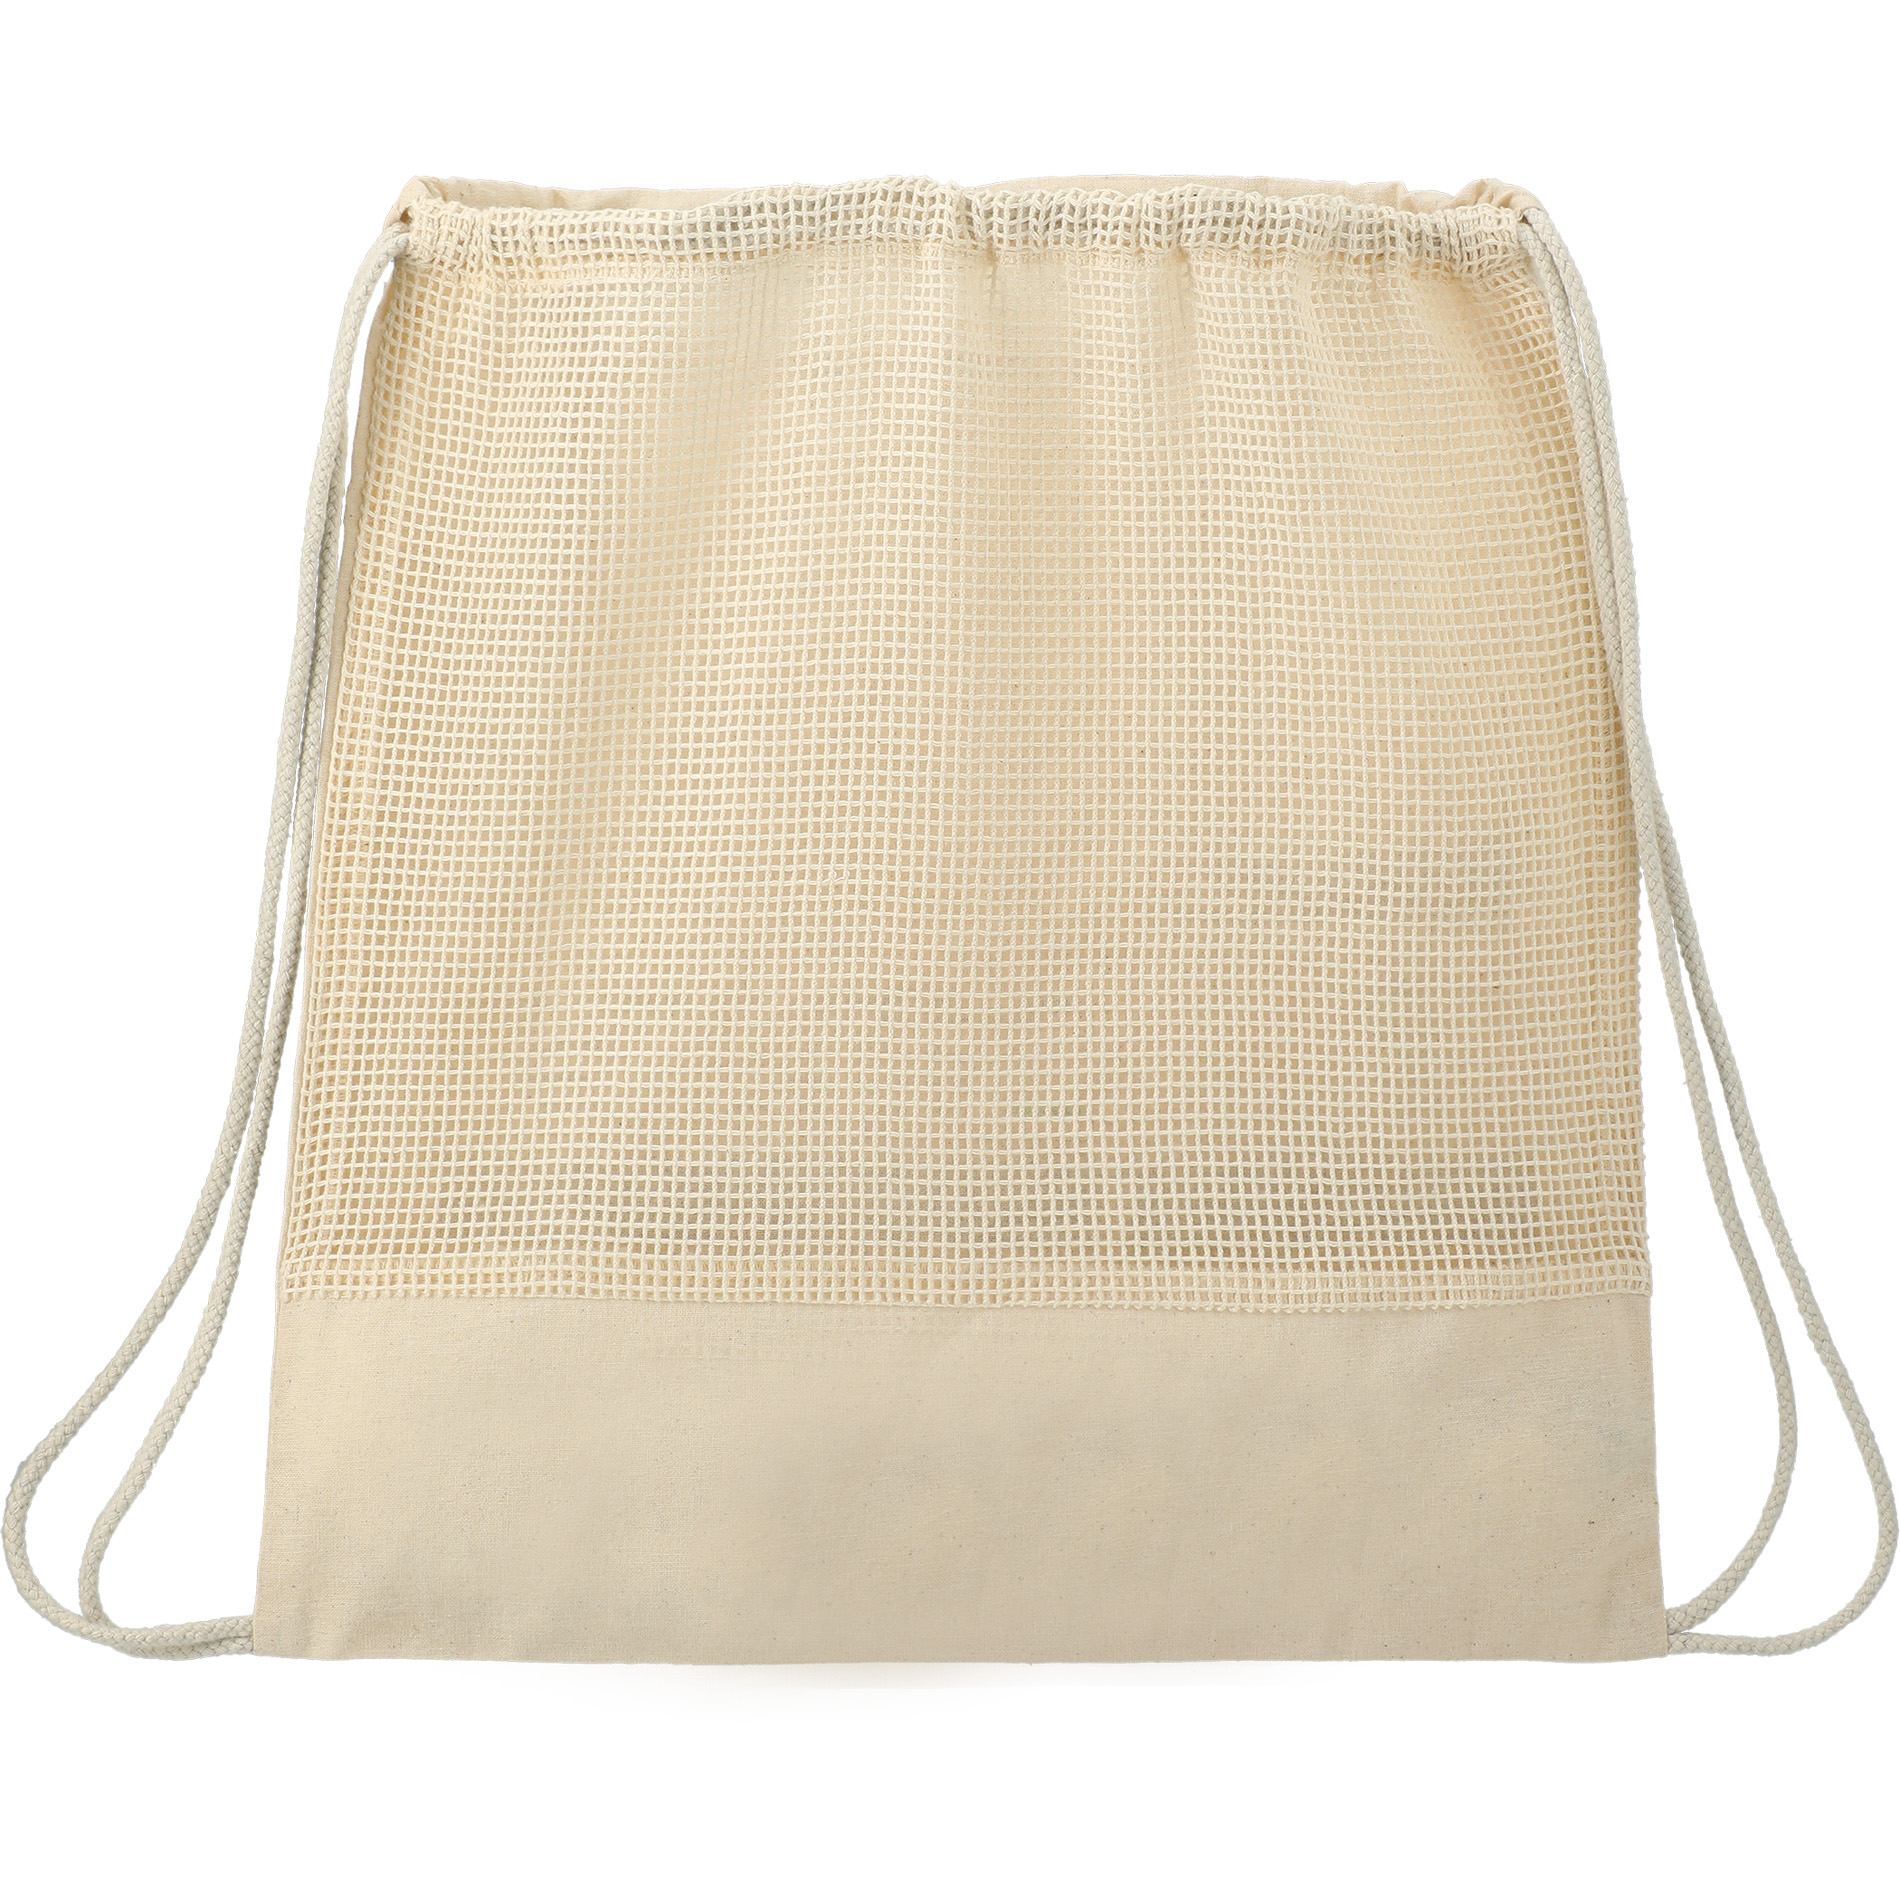 LEEDS 3005-71 - Cotton Mesh Drawstring Bag